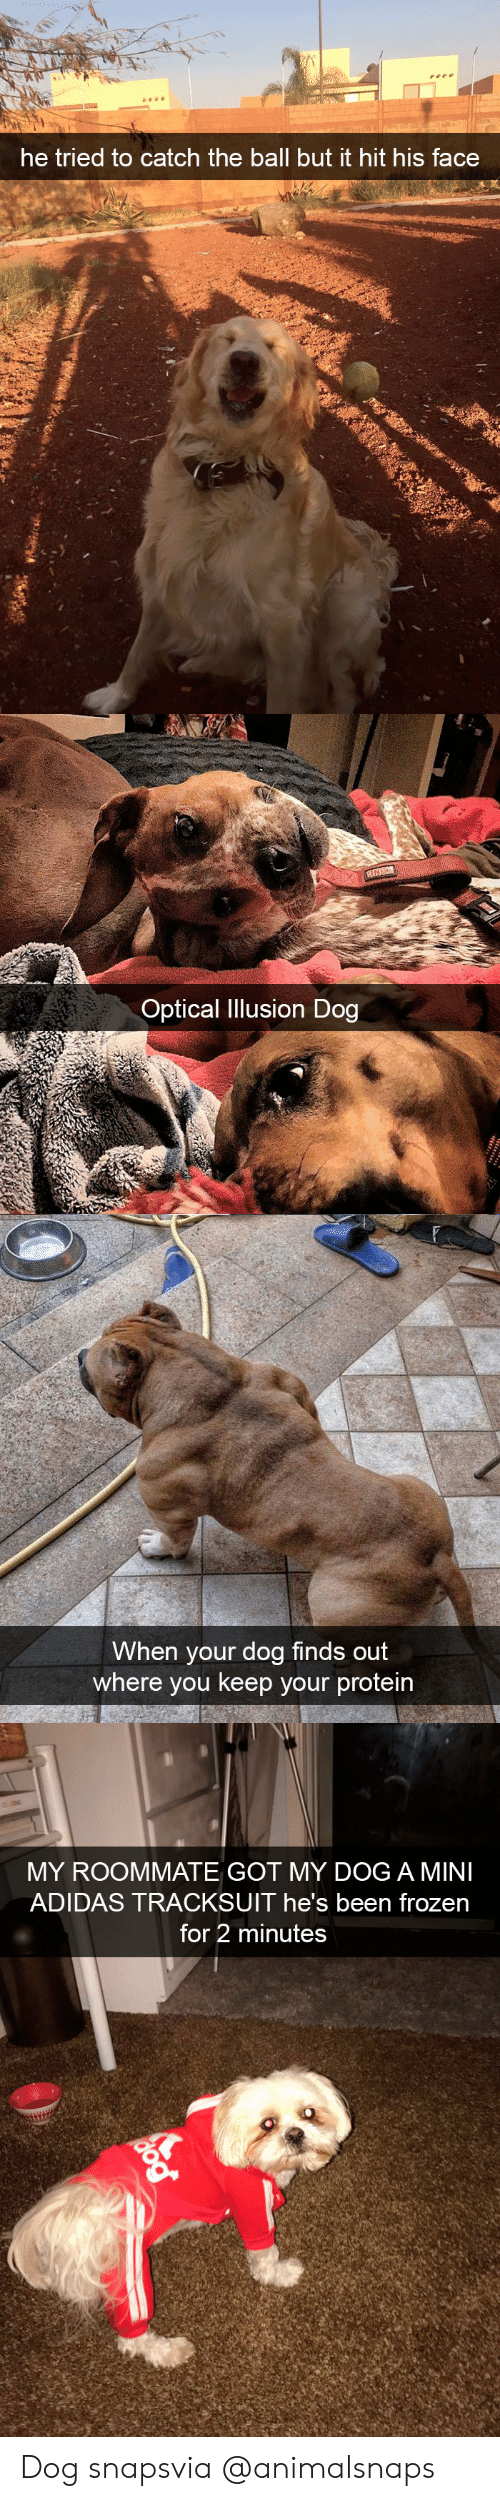 Adidas, Frozen, and Protein: he tried to catch the ball but it hit his face   Optical Ilusion Dog   When your dog finds out  where you keep your protein   MY ROOMMATE GOT MY DOG A MINI  ADIDAS TRACKSUIT he's been frozen  for 2 minutes Dog snapsvia @animalsnaps